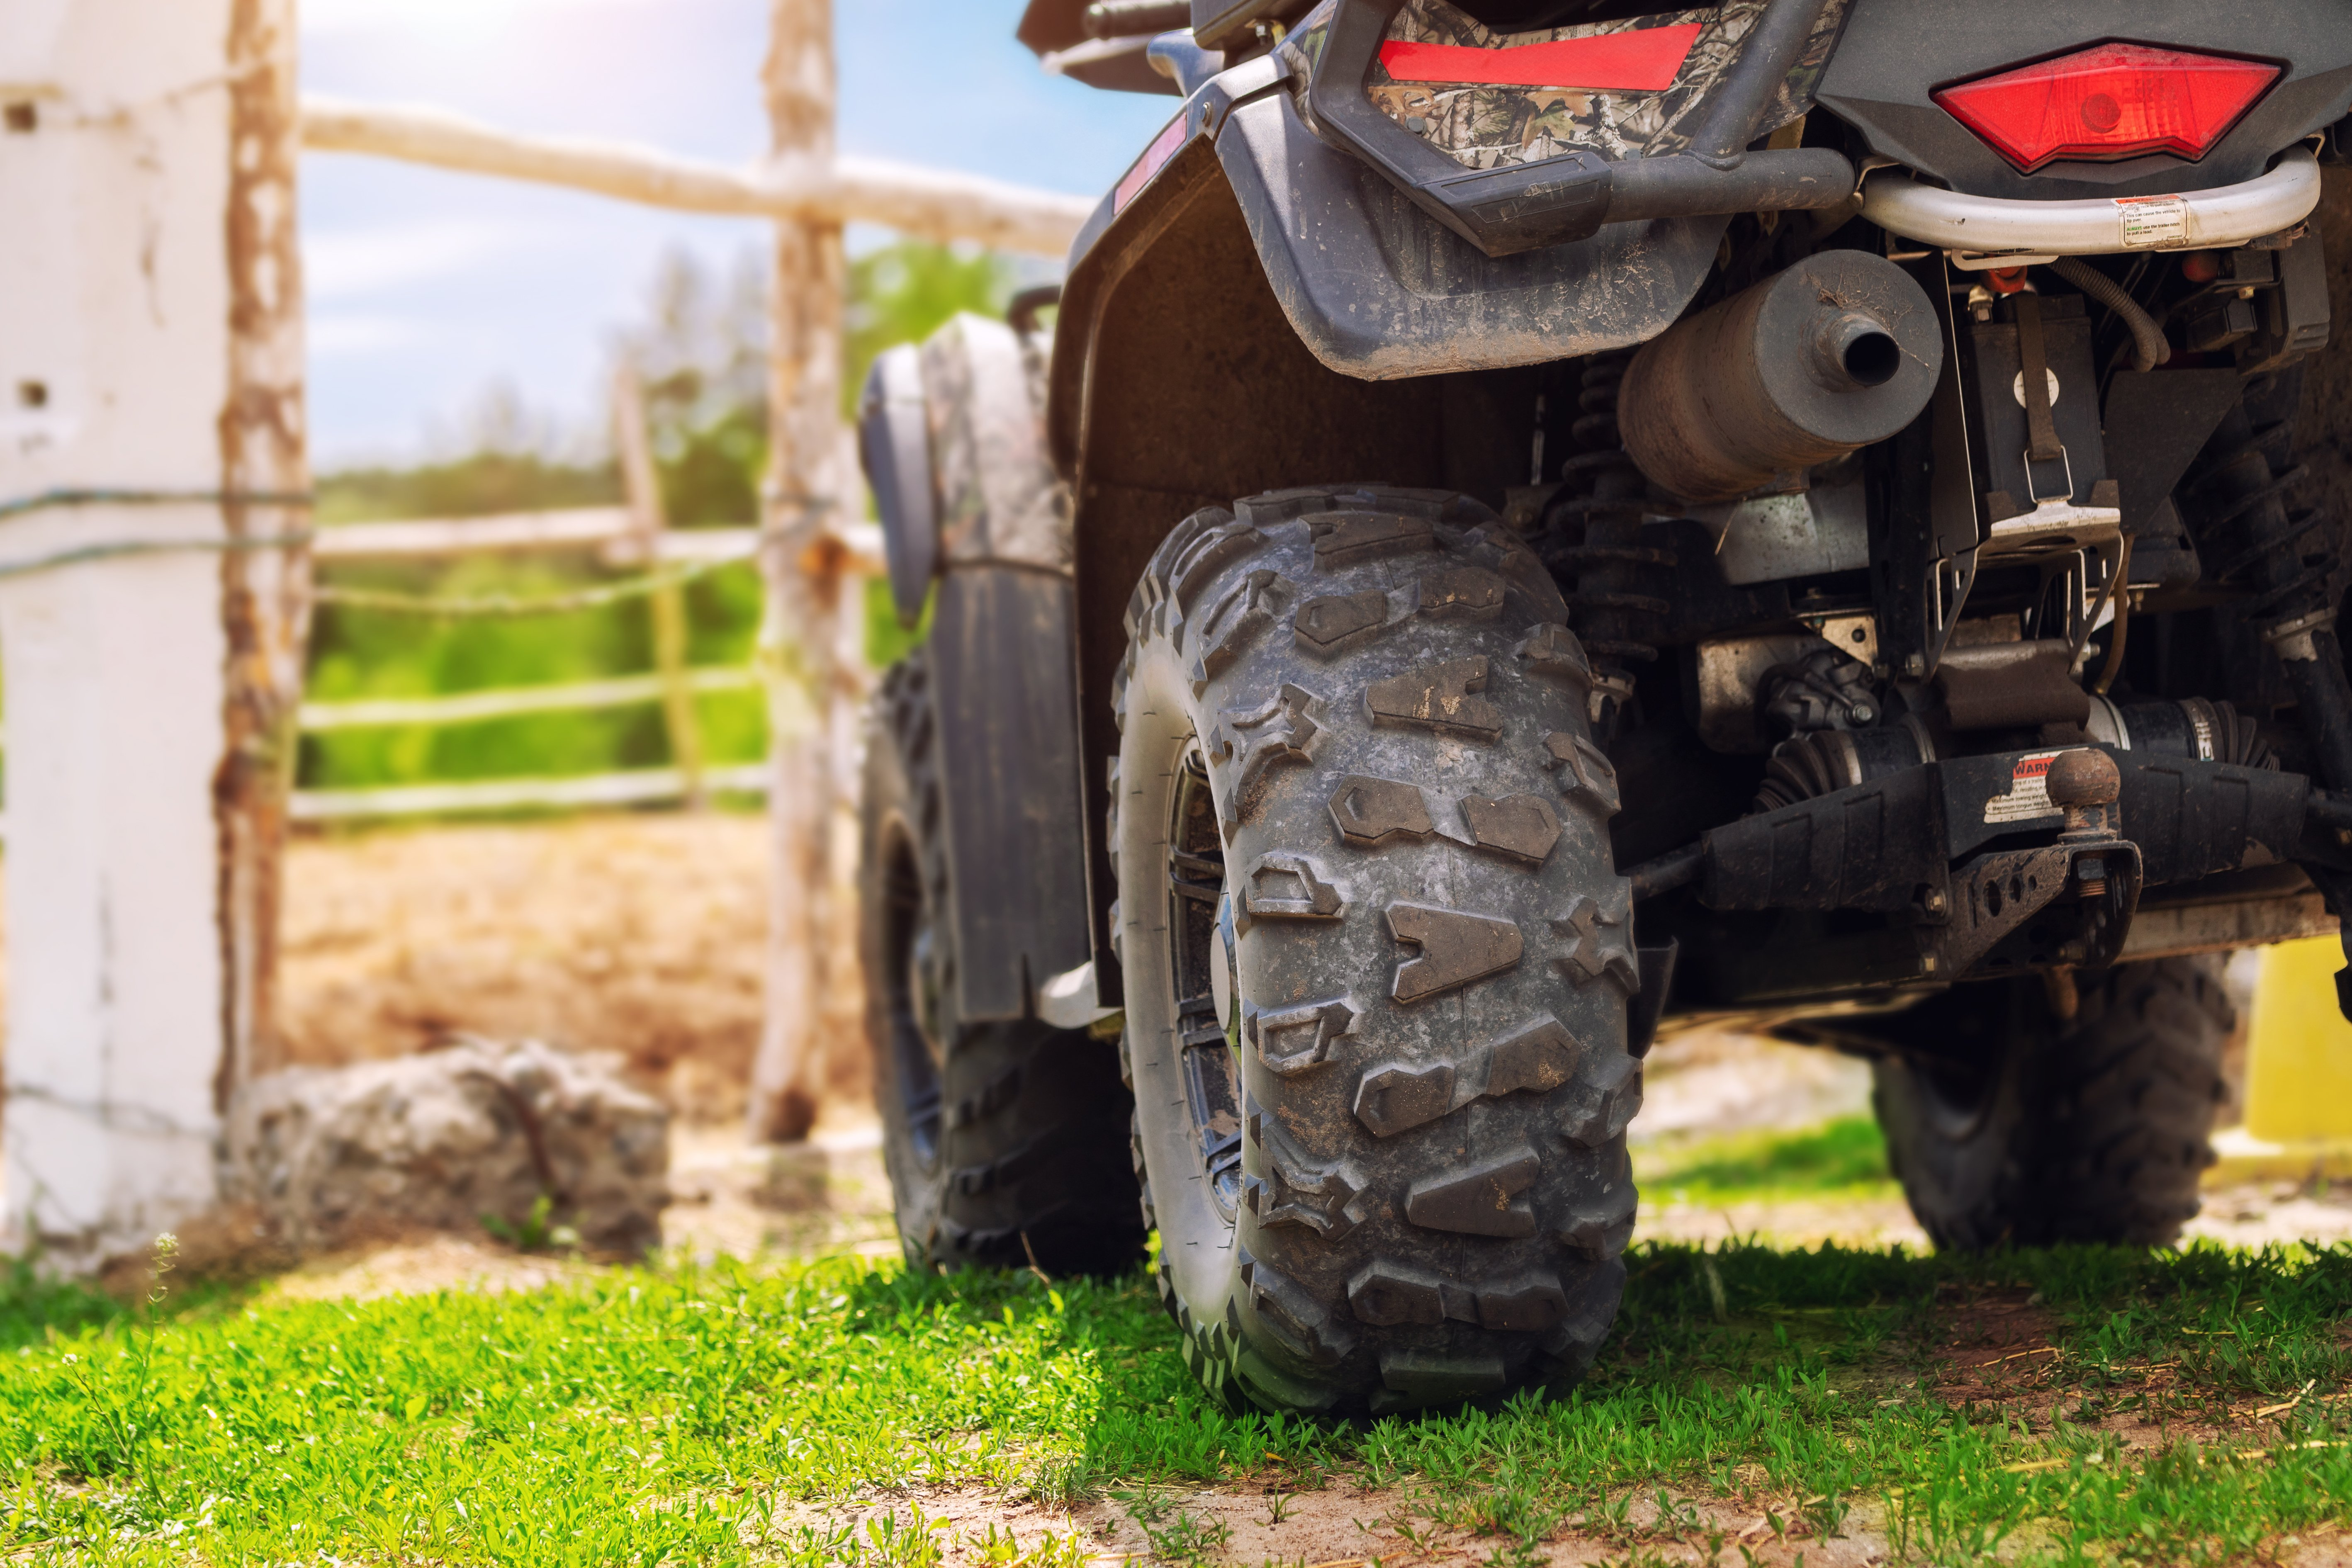 ATV on farm